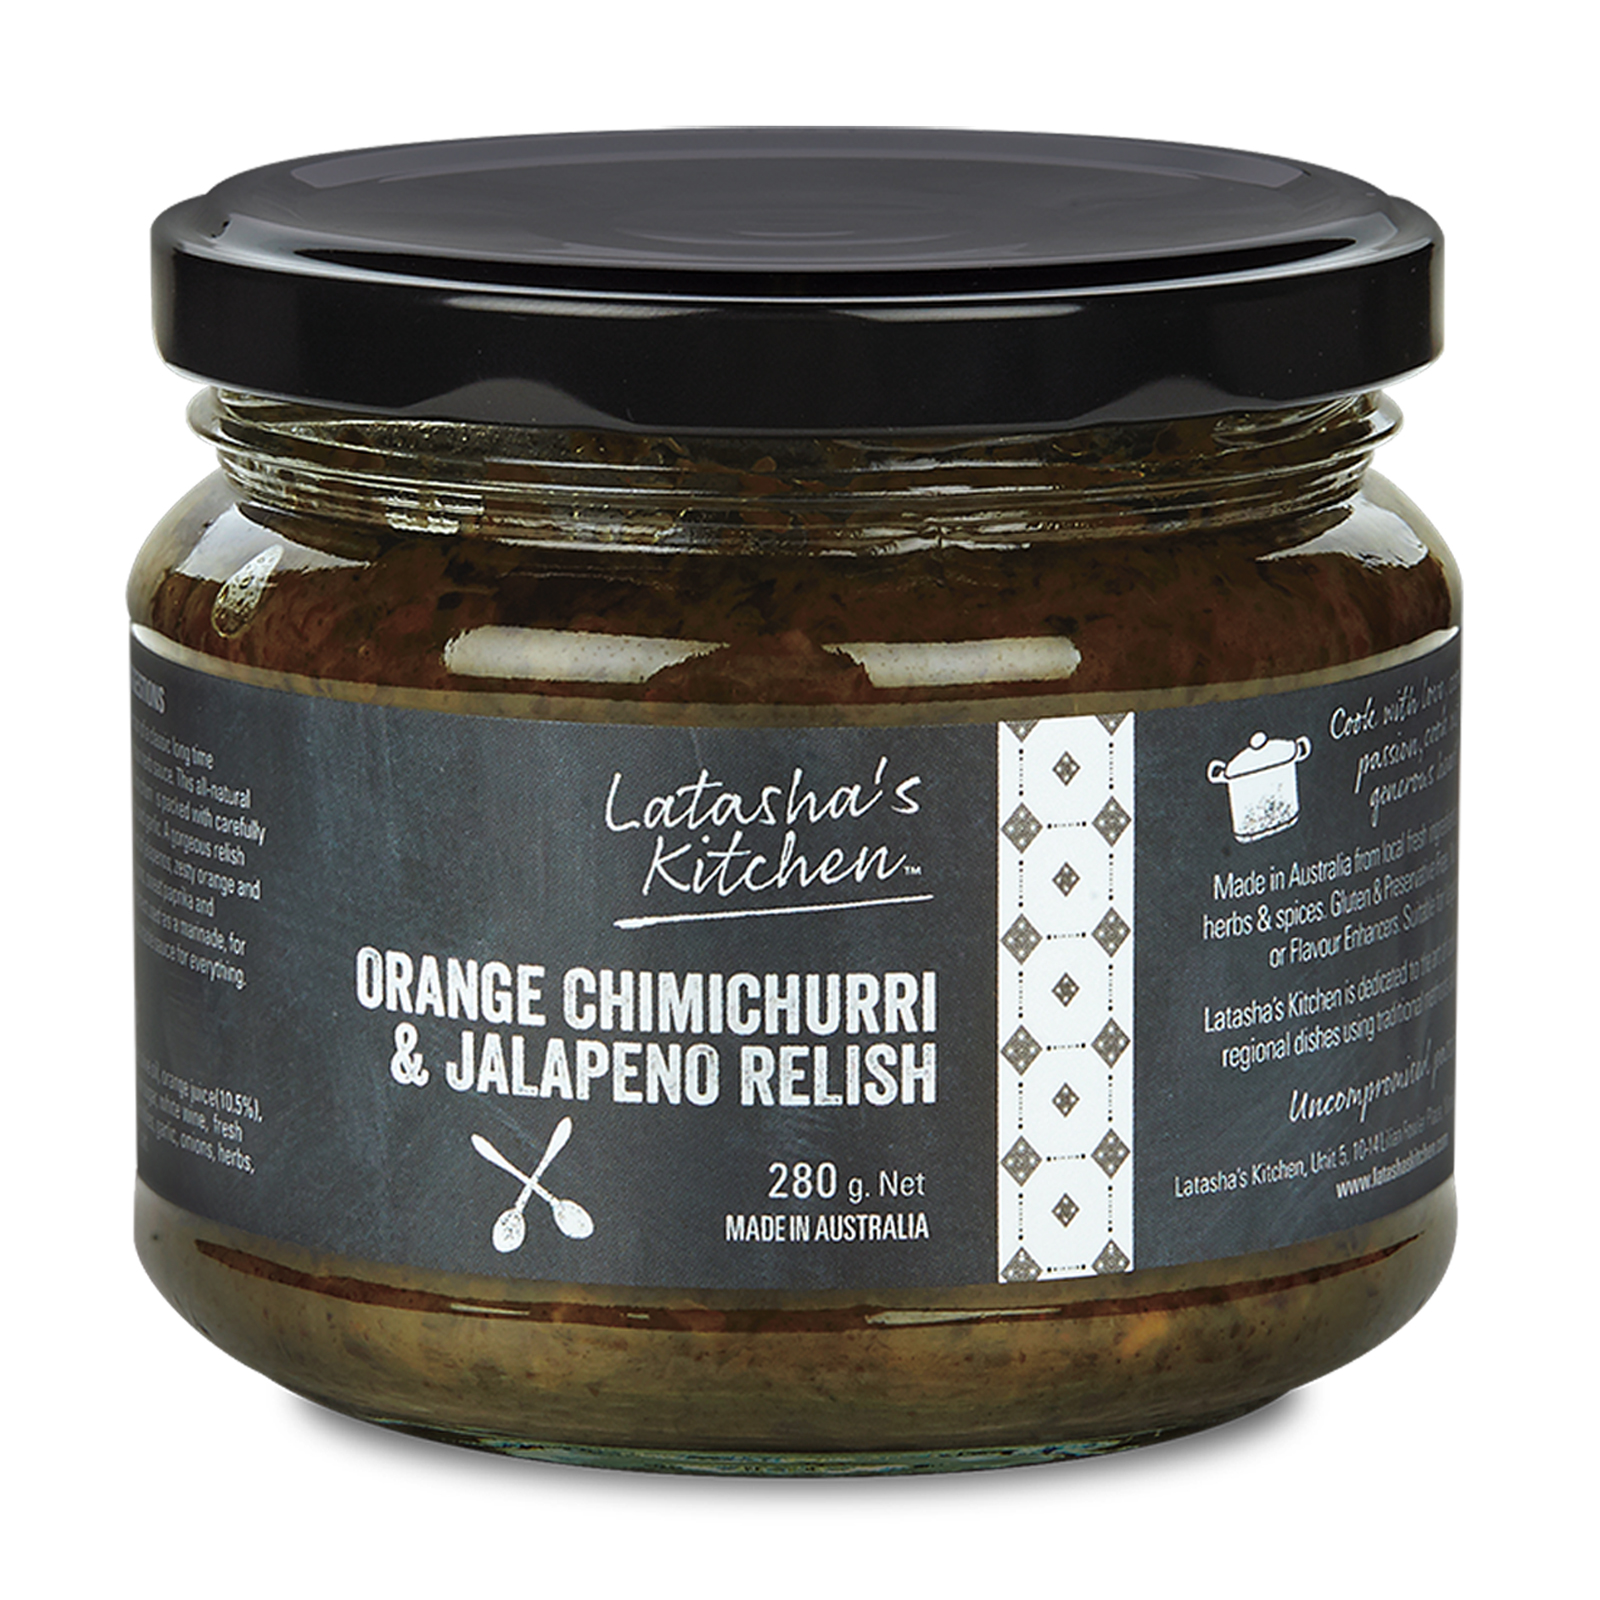 Orange Chimichurri Jalapeno Relish by Latasha's Kitchen